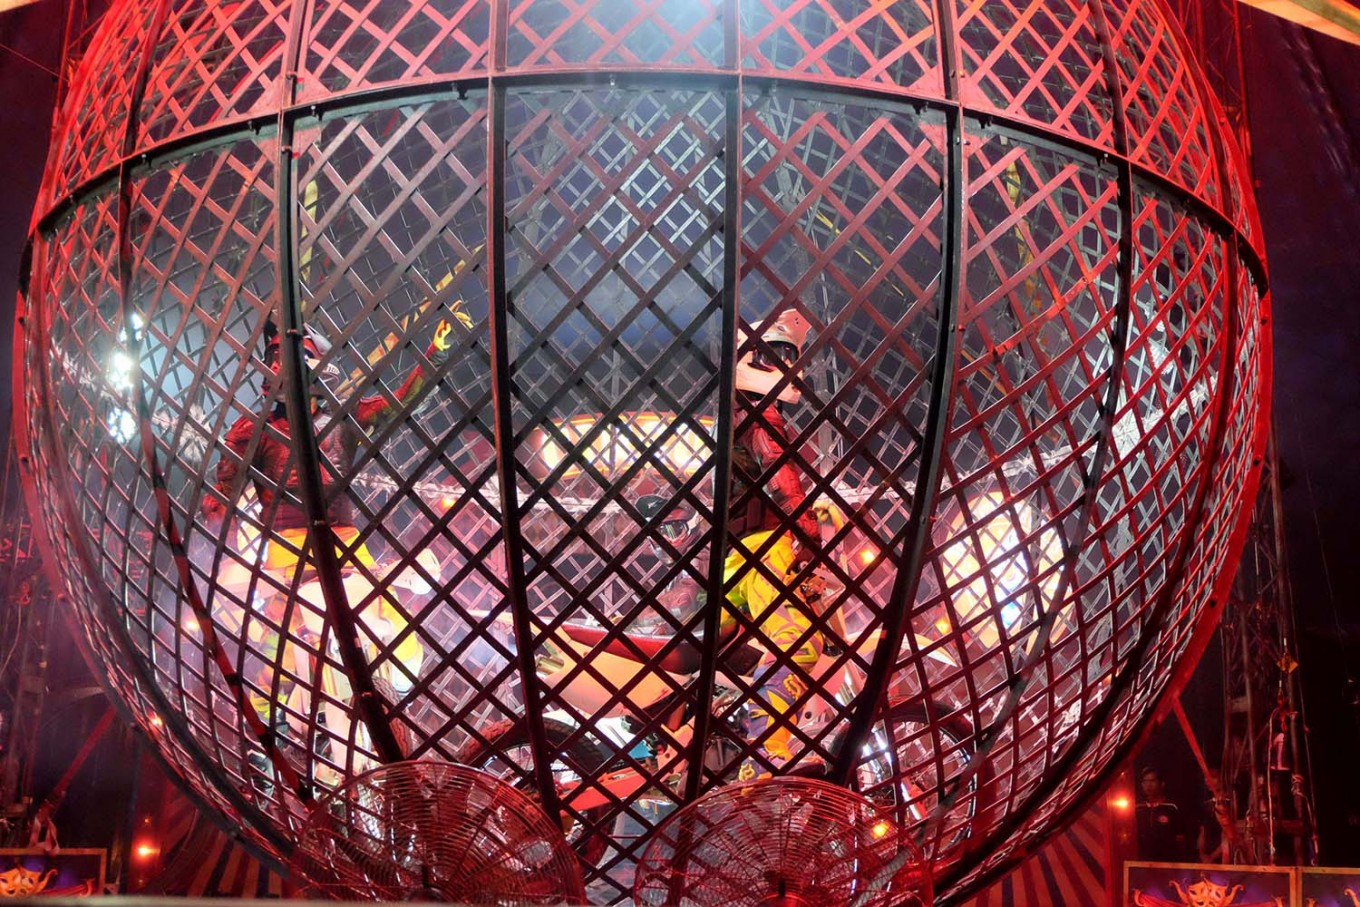 Don't try this: The crazy globe features two motorcyclists riding at high speed inside an iron sphere. JP/Vellen Augustine